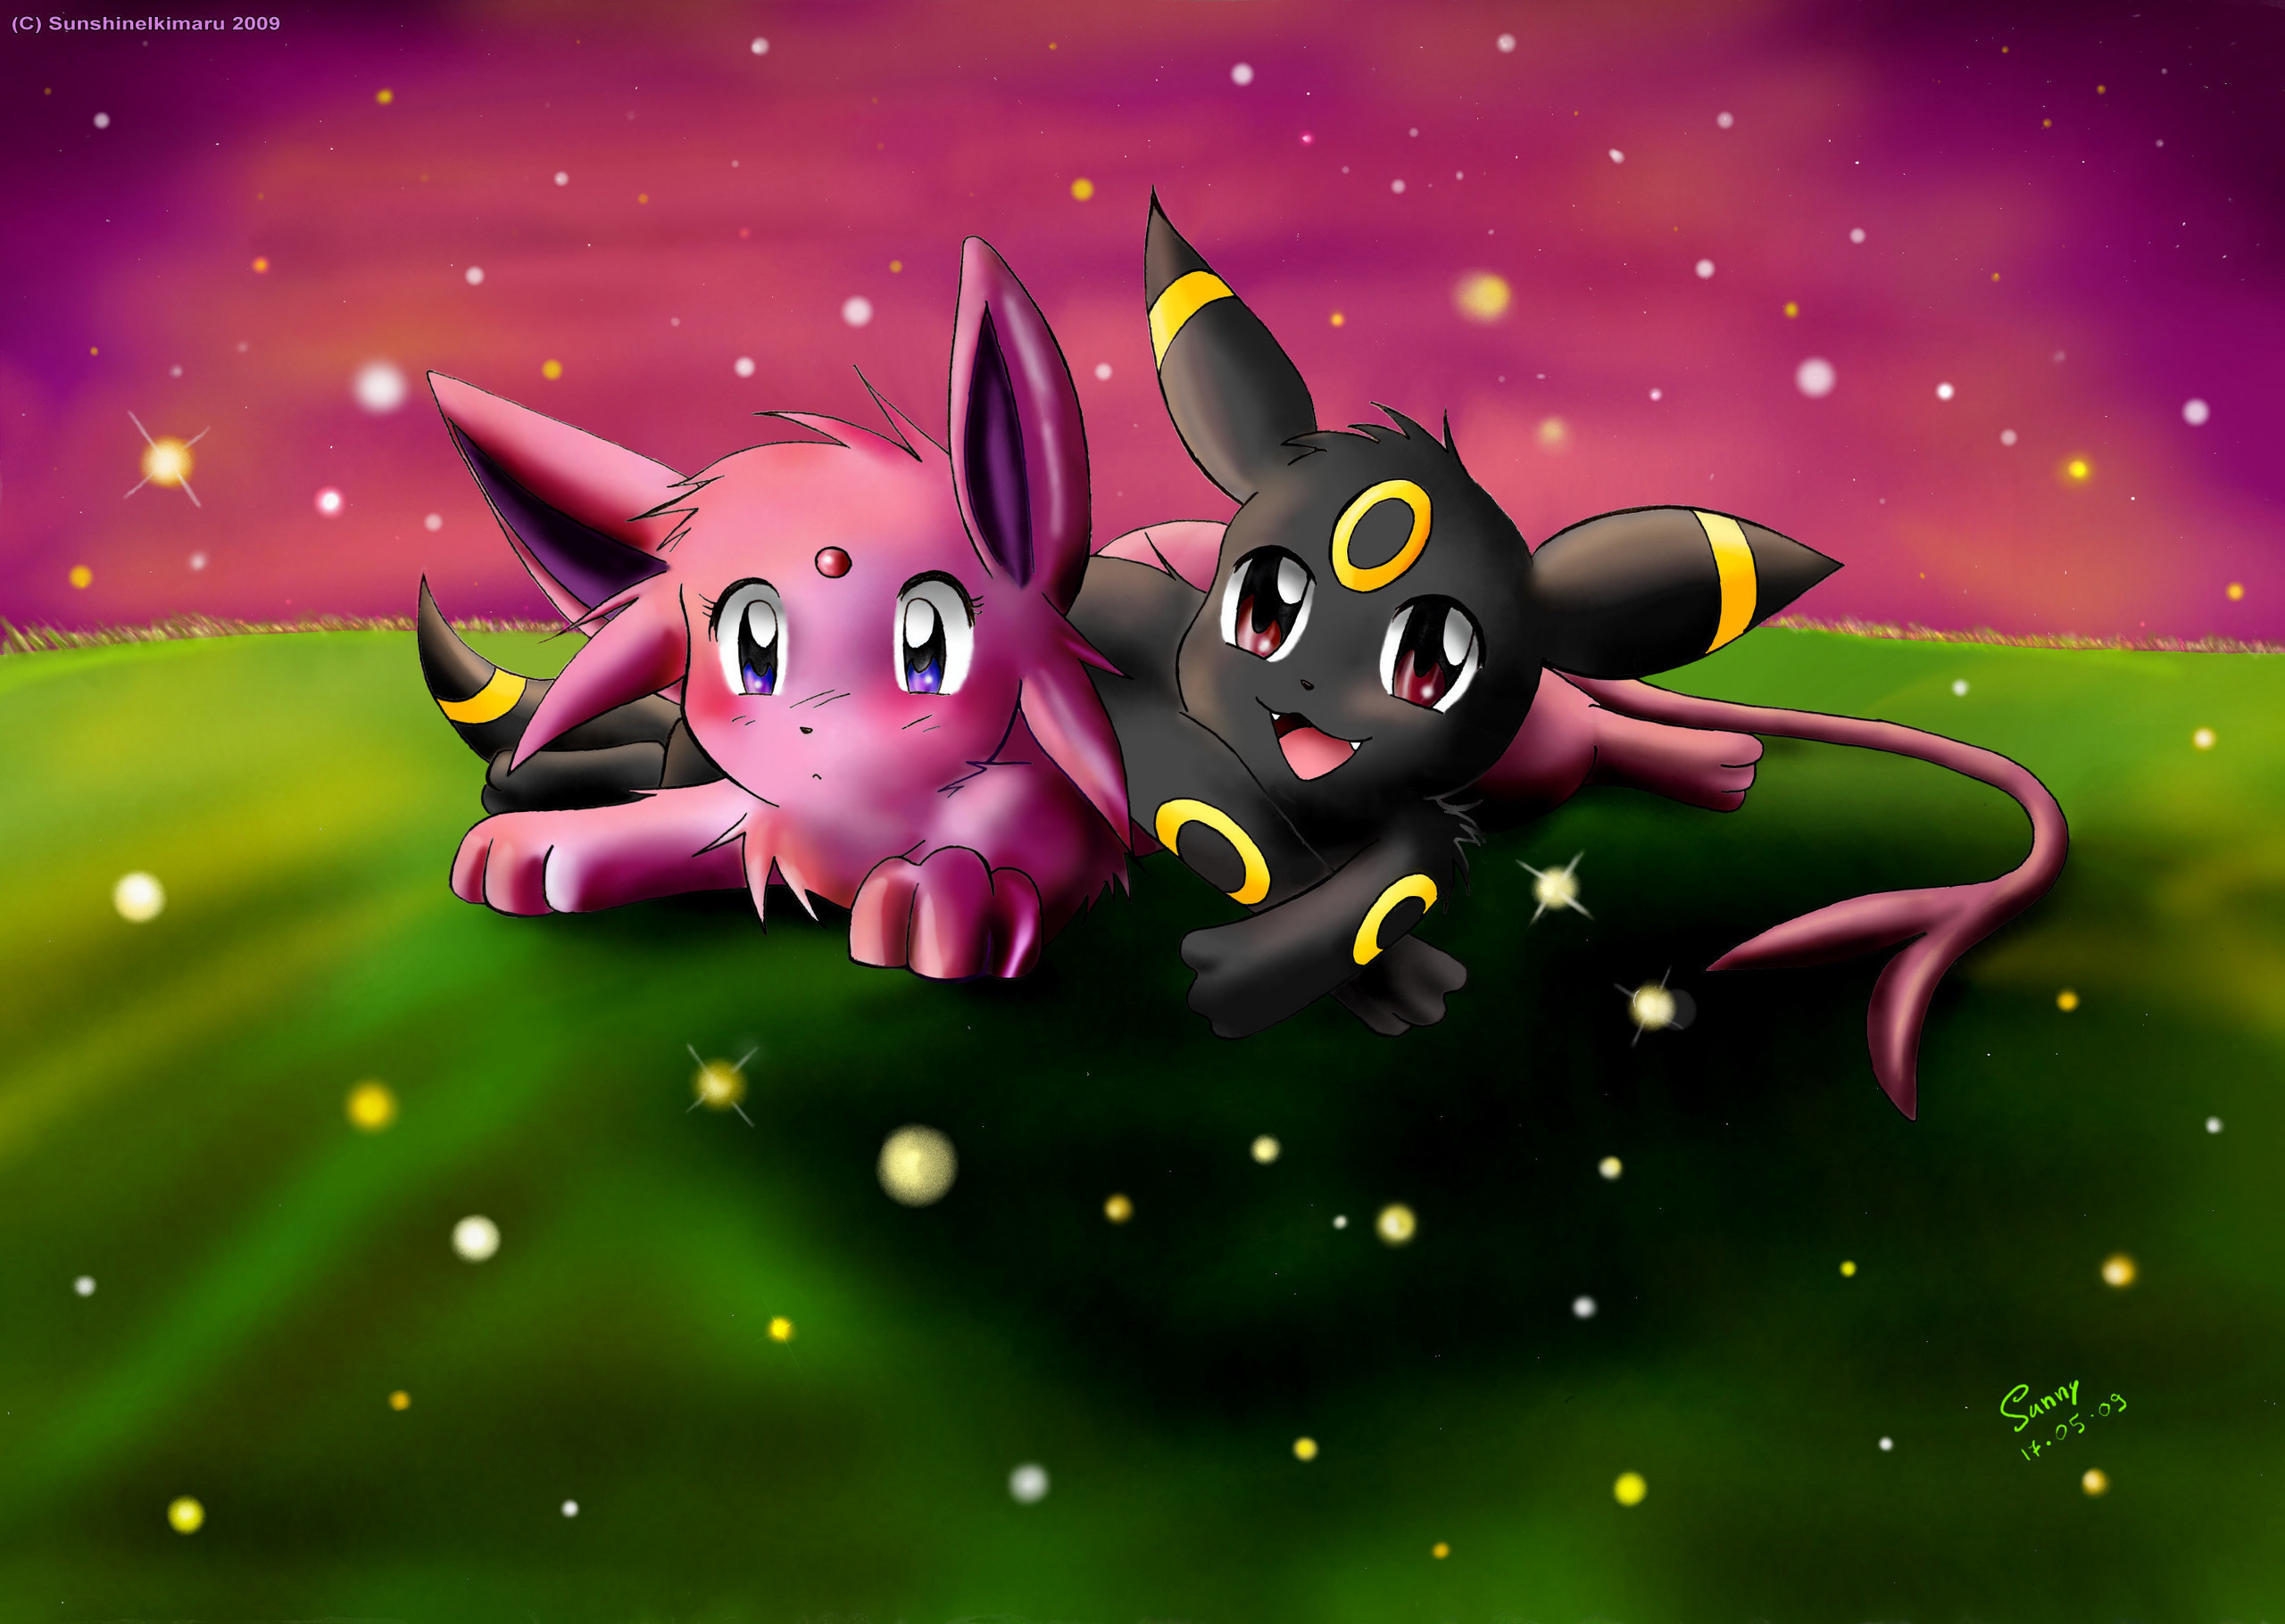 Res: 2560x1820, Espeon images Espeon and Umbreon HD wallpaper and background photos